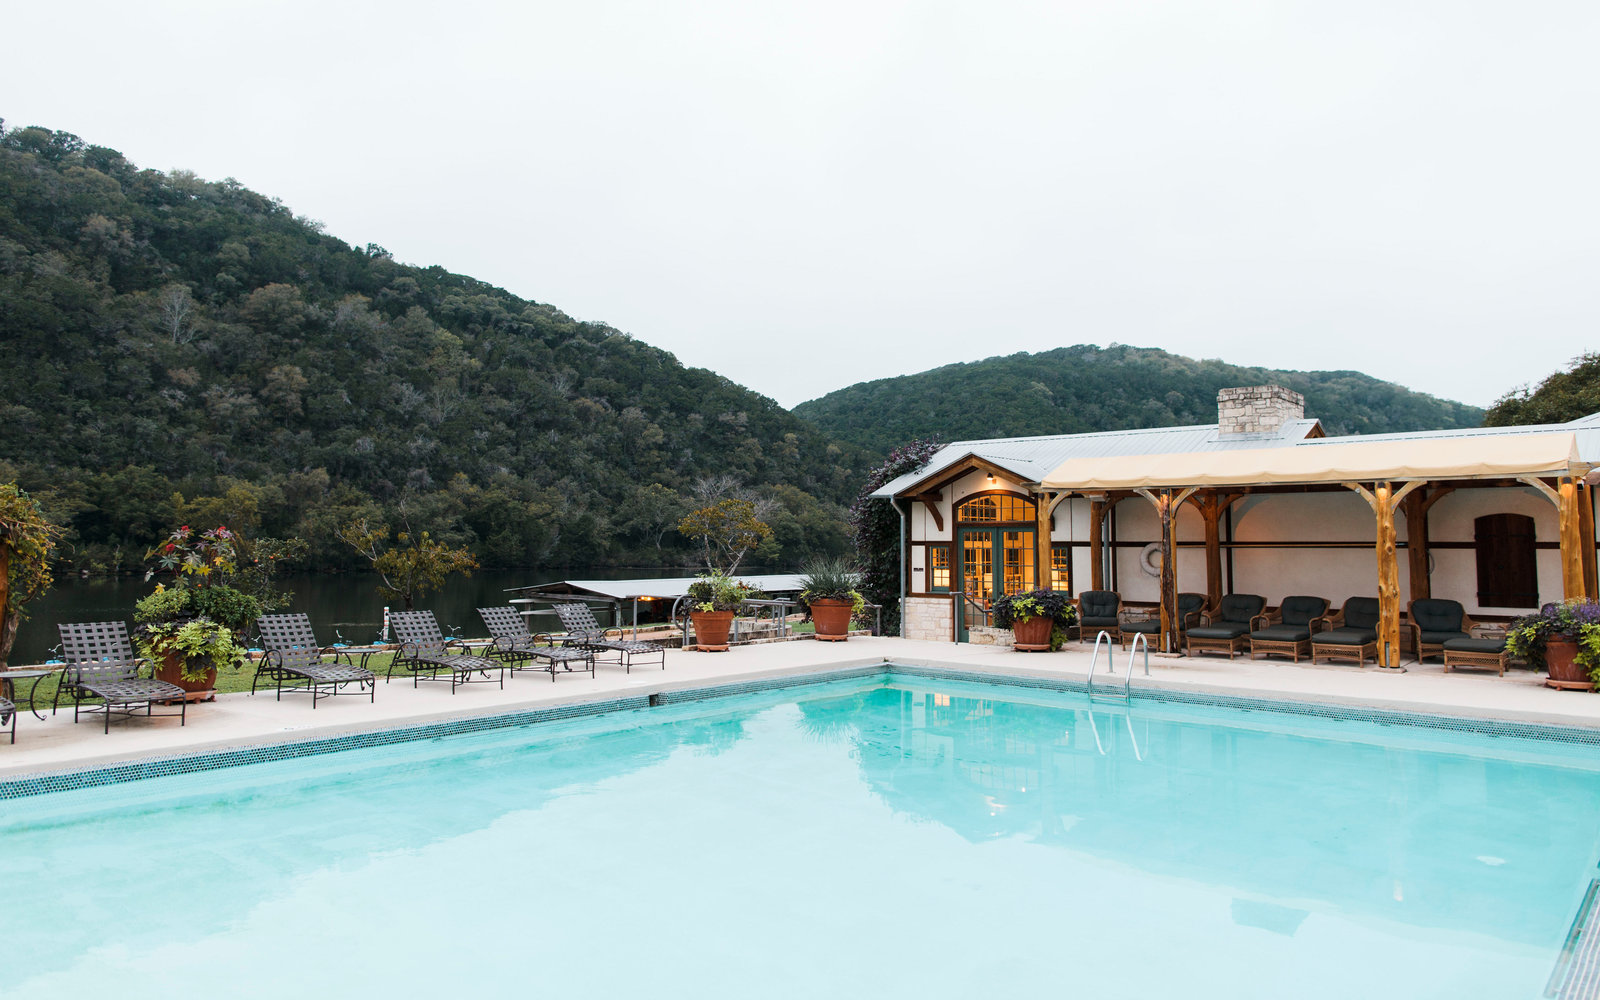 Lake Austin Resort